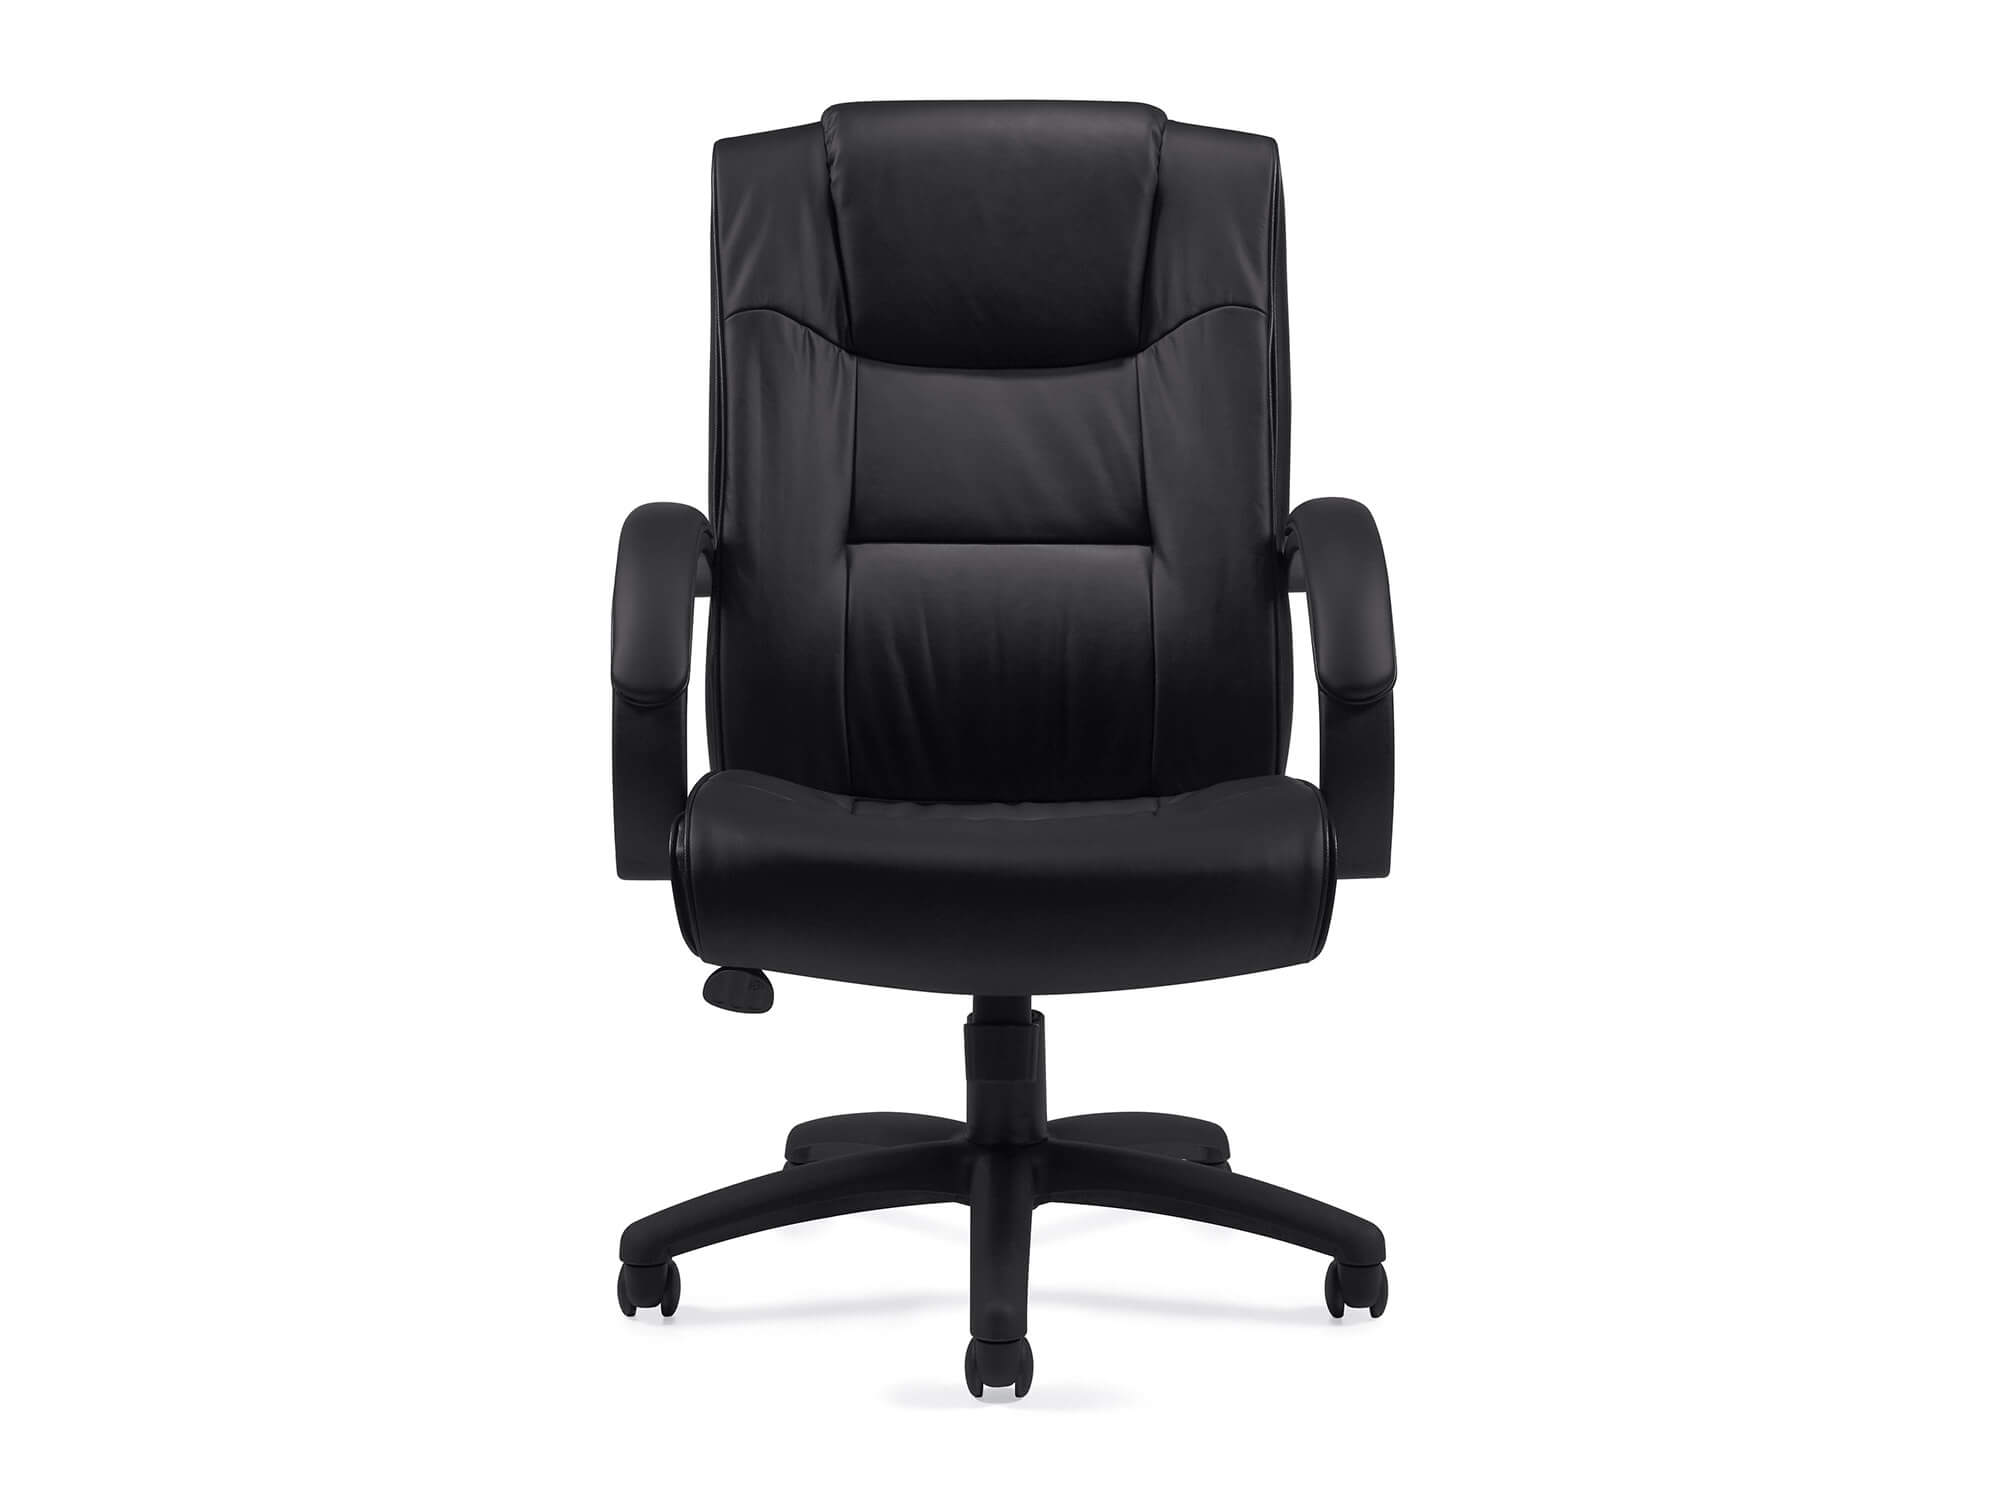 Conference style seating CUB 11618B GTO